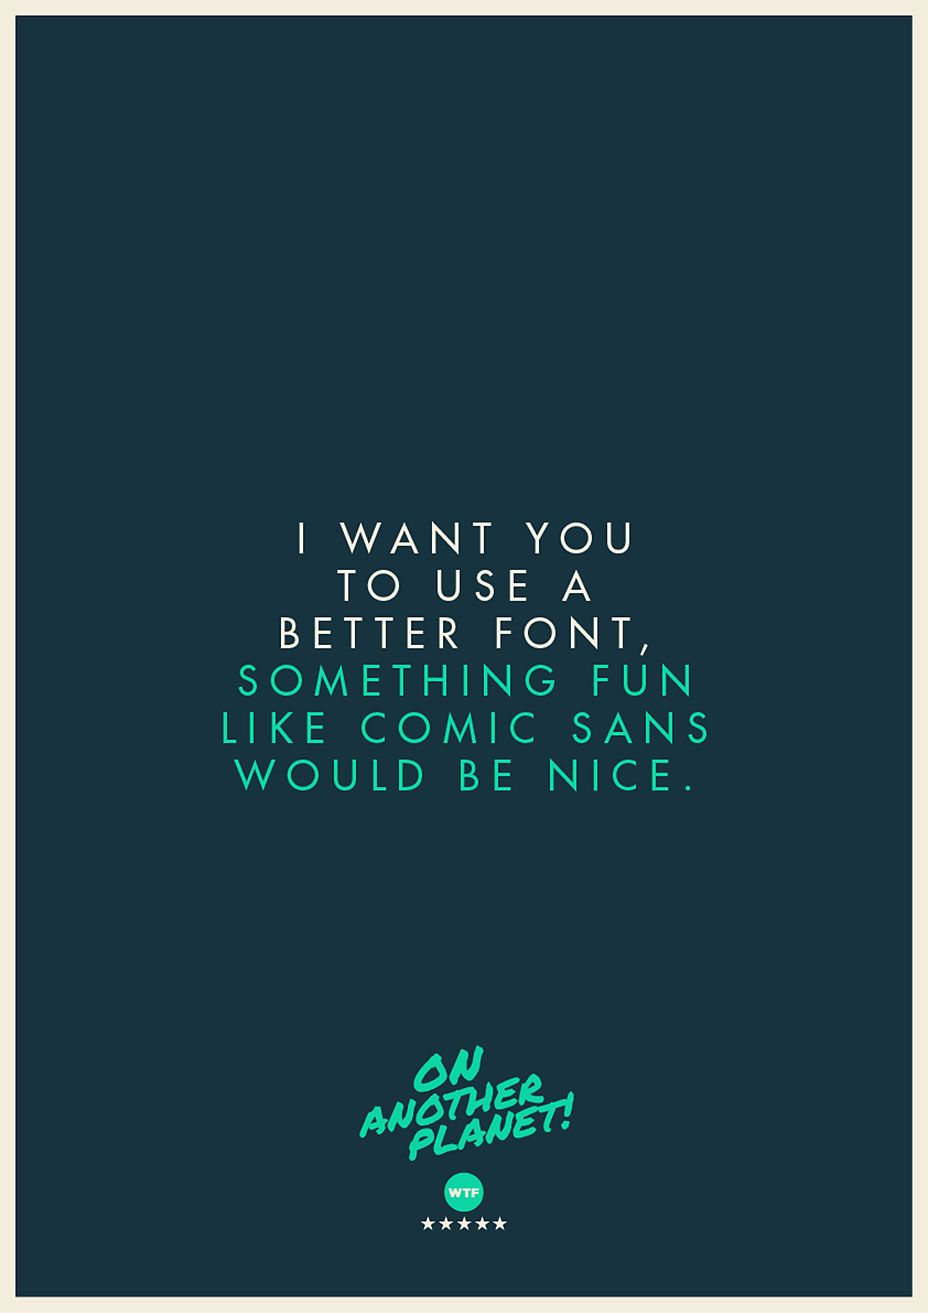 101 Inspirational Quotes For Designers Graphic Design Humor Web Design Quotes Graphic Design Memes